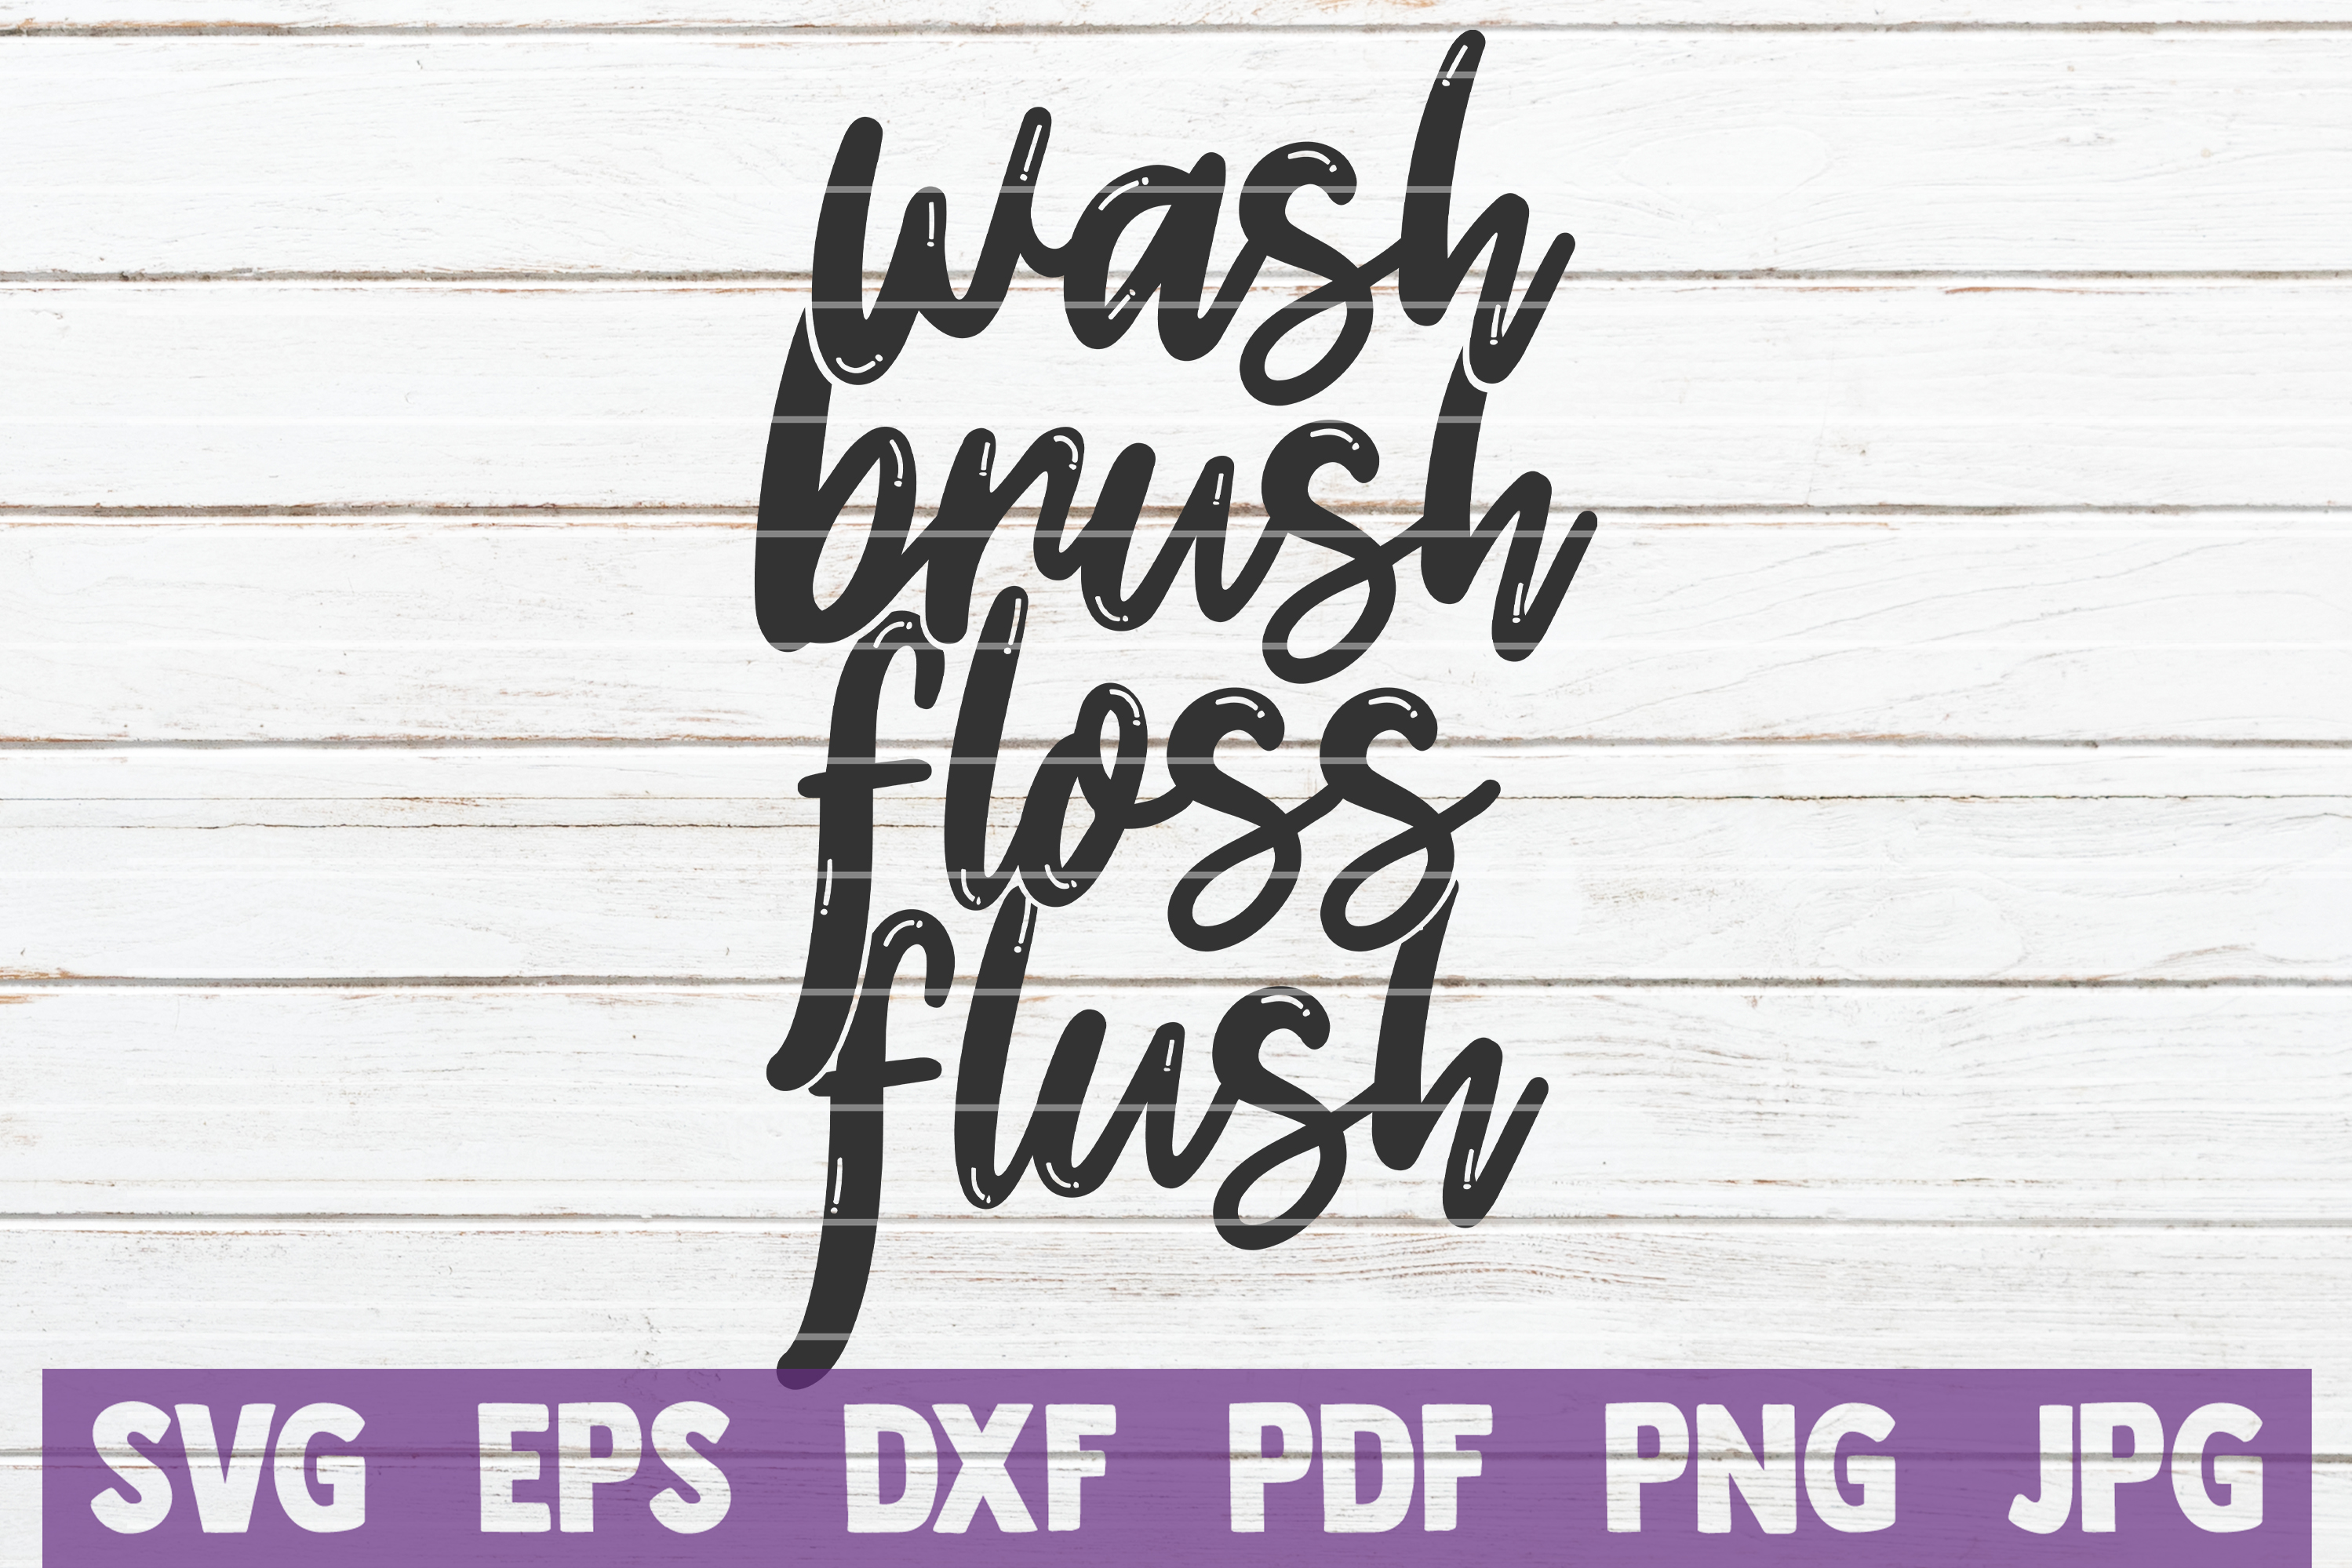 Download Free Wash Brush Floss Flush Graphic By Mintymarshmallows Creative for Cricut Explore, Silhouette and other cutting machines.